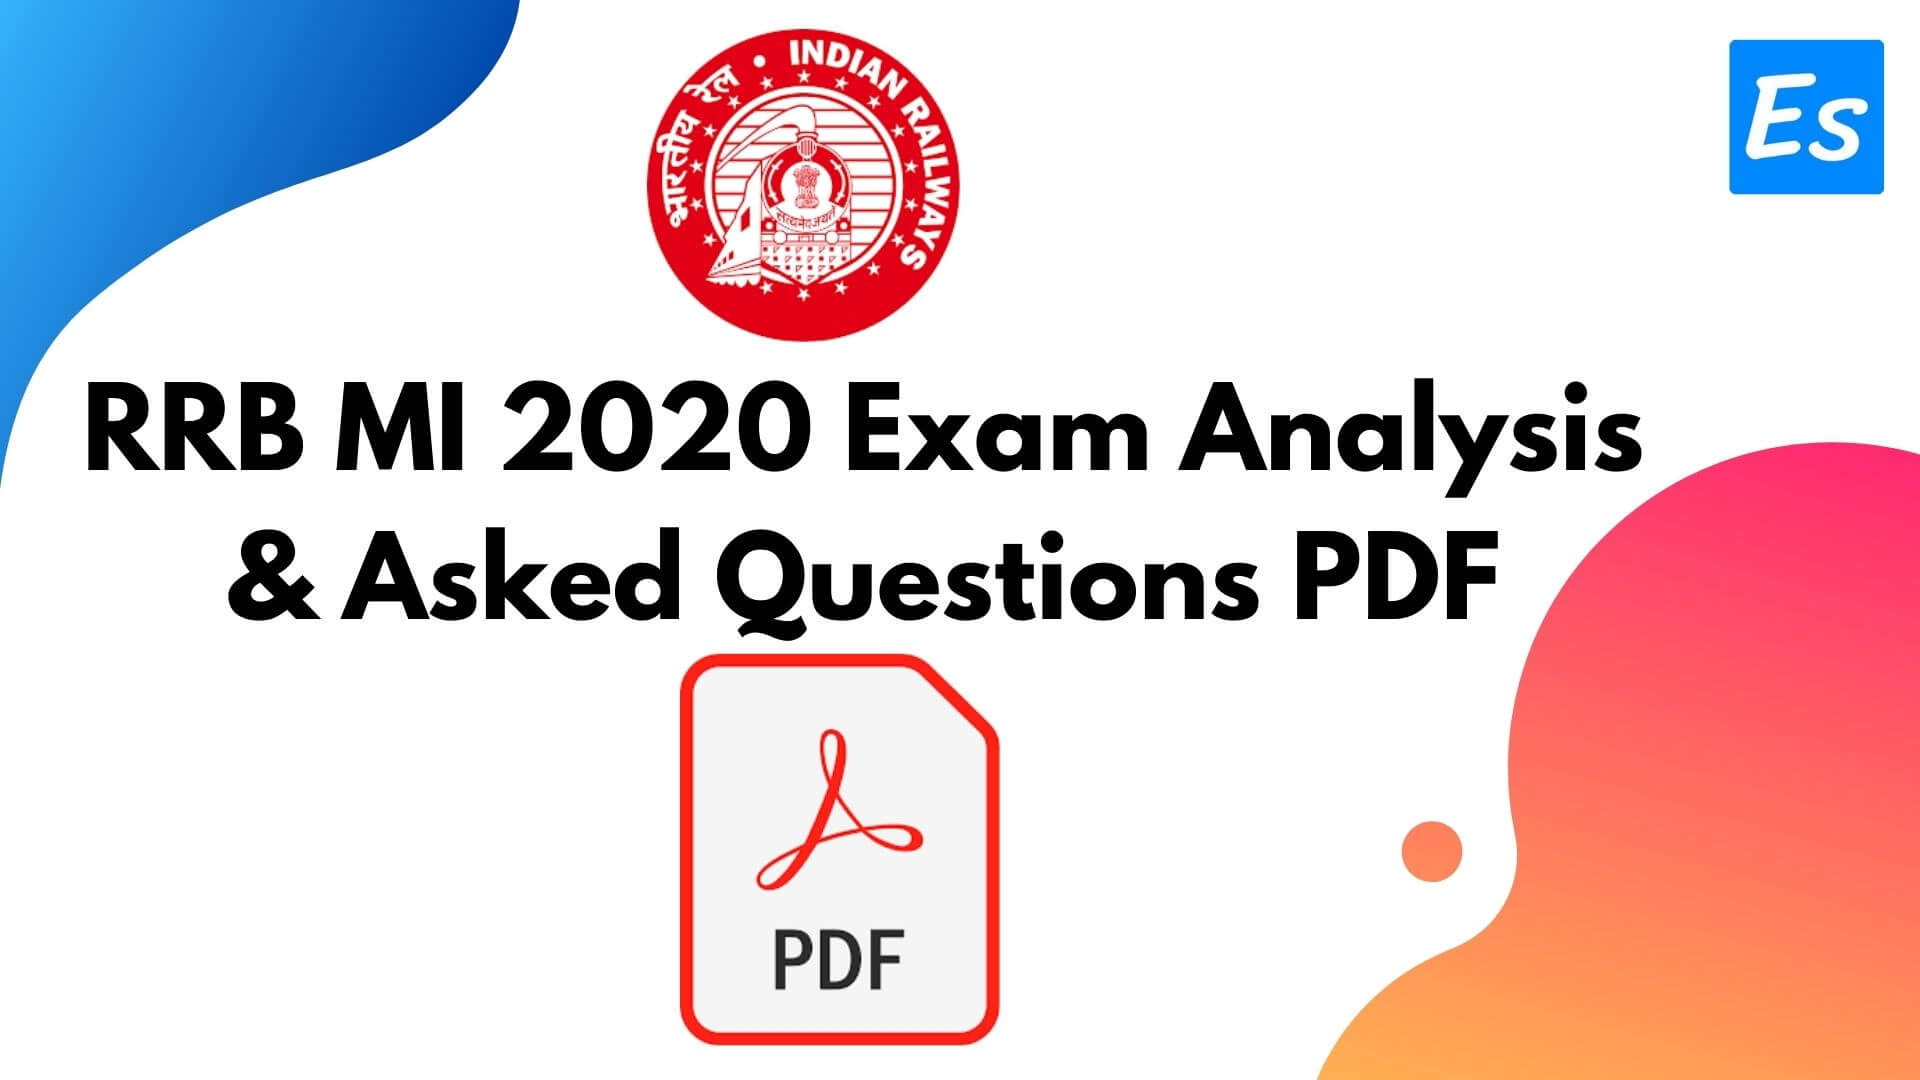 RRB MI 2020 Exam Analysis & Asked Questions PDF